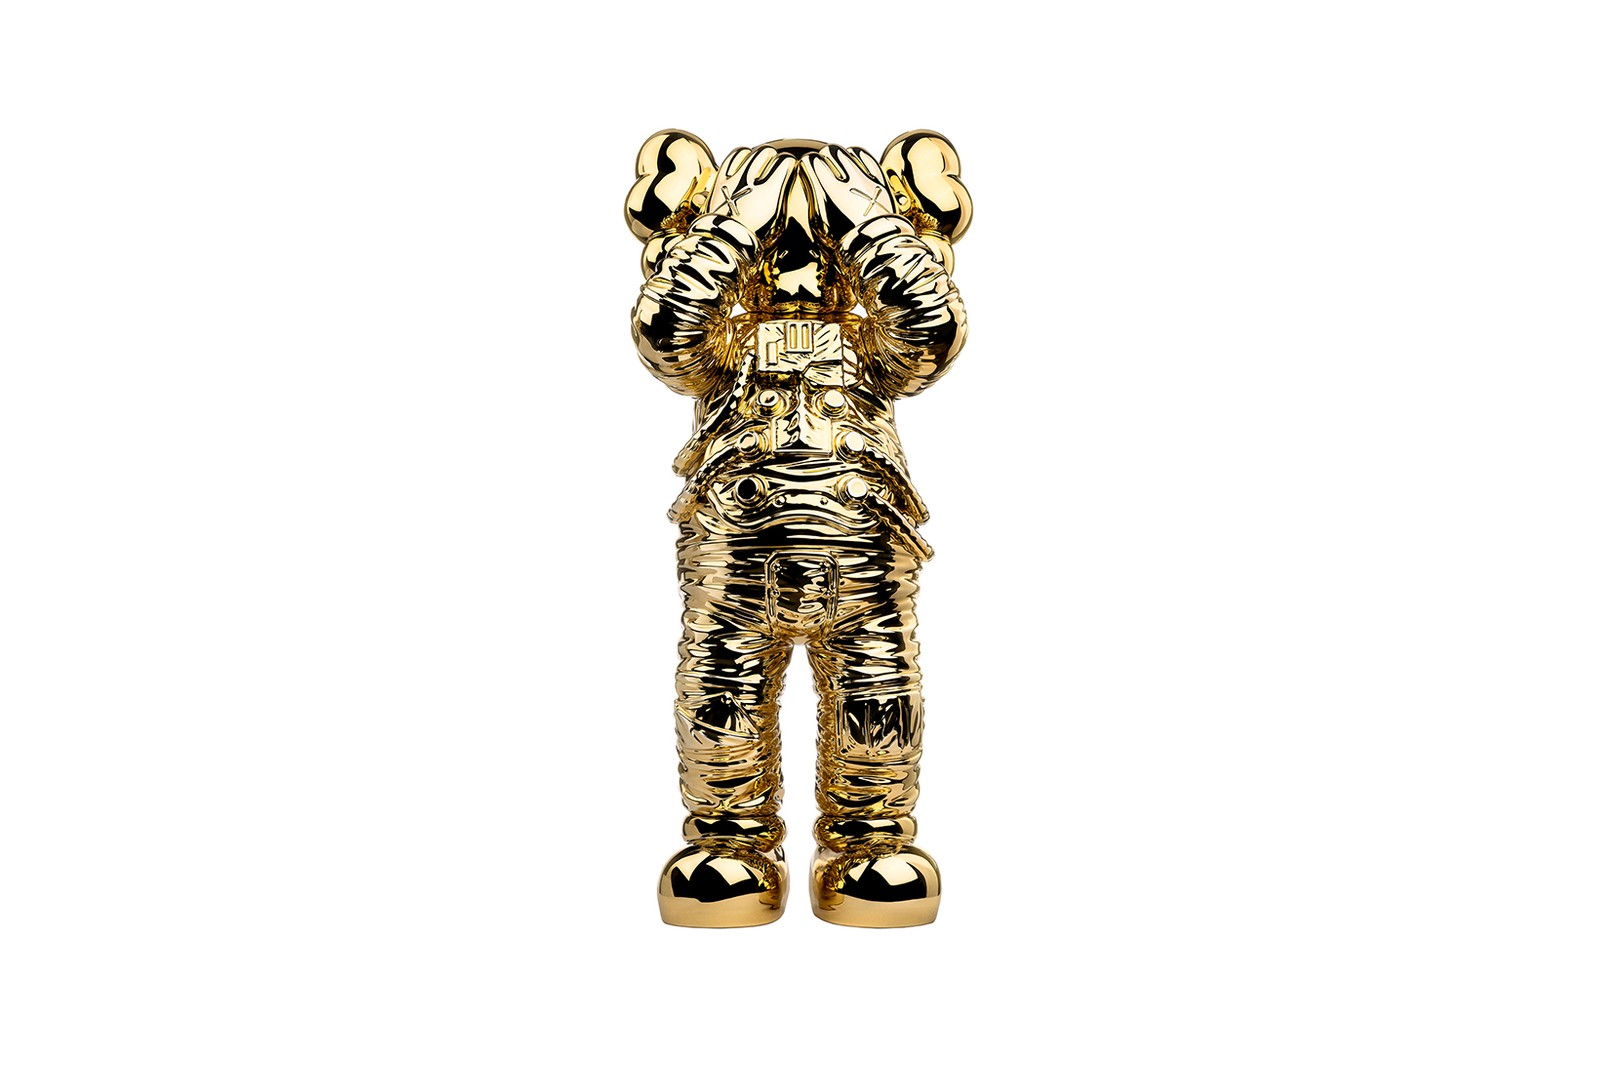 kaws holiday space allrightsreserved collaboration companion figure collectibles gold sculpture